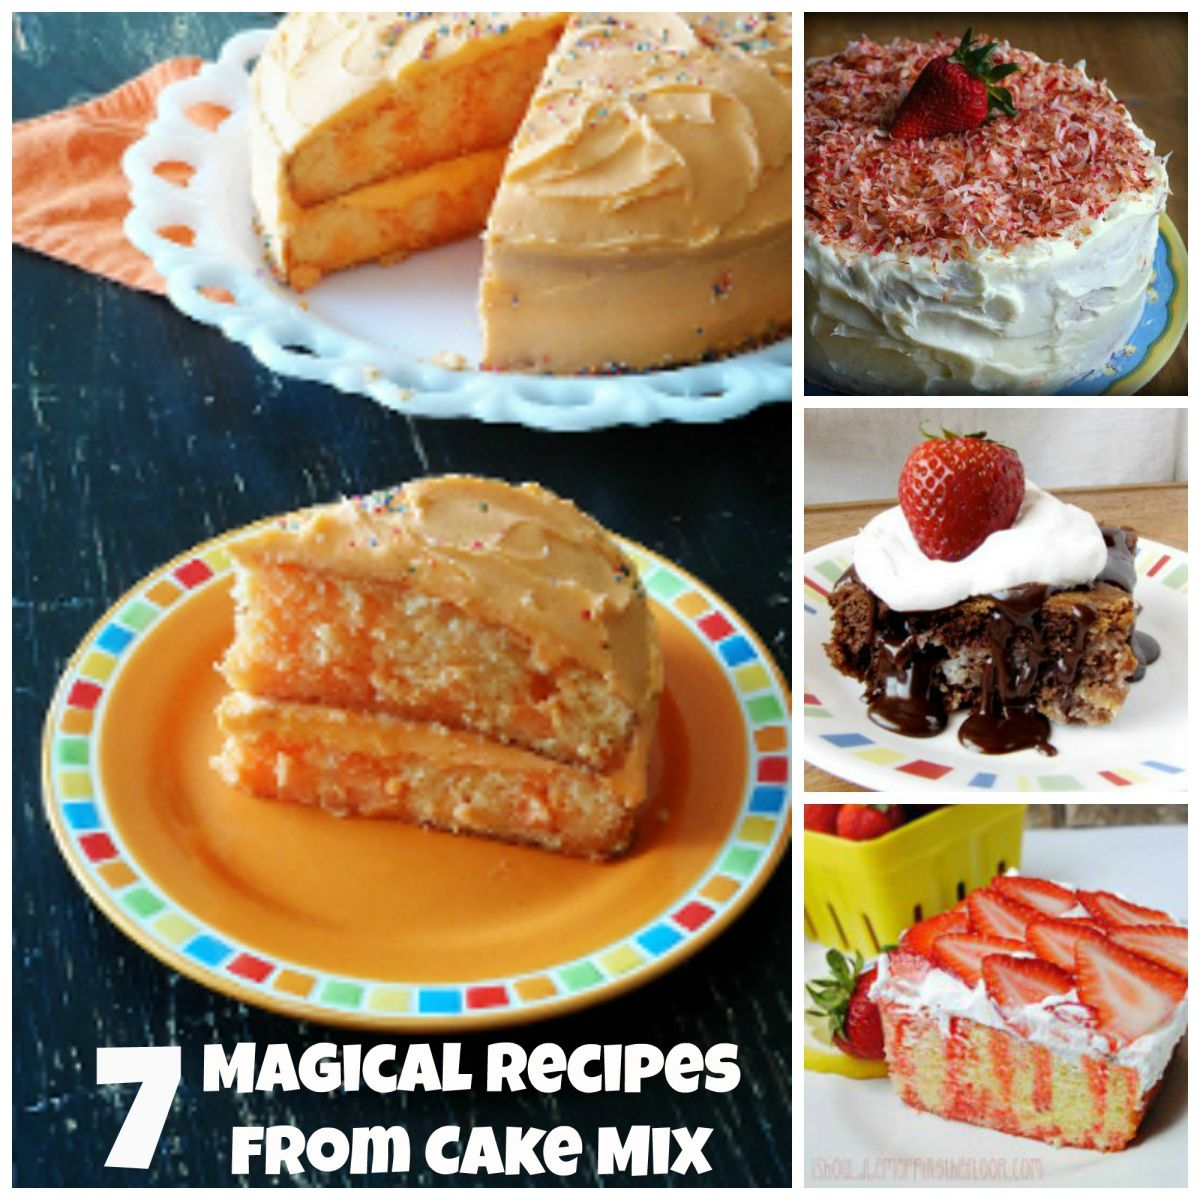 Magical Recipes from Cake Mix